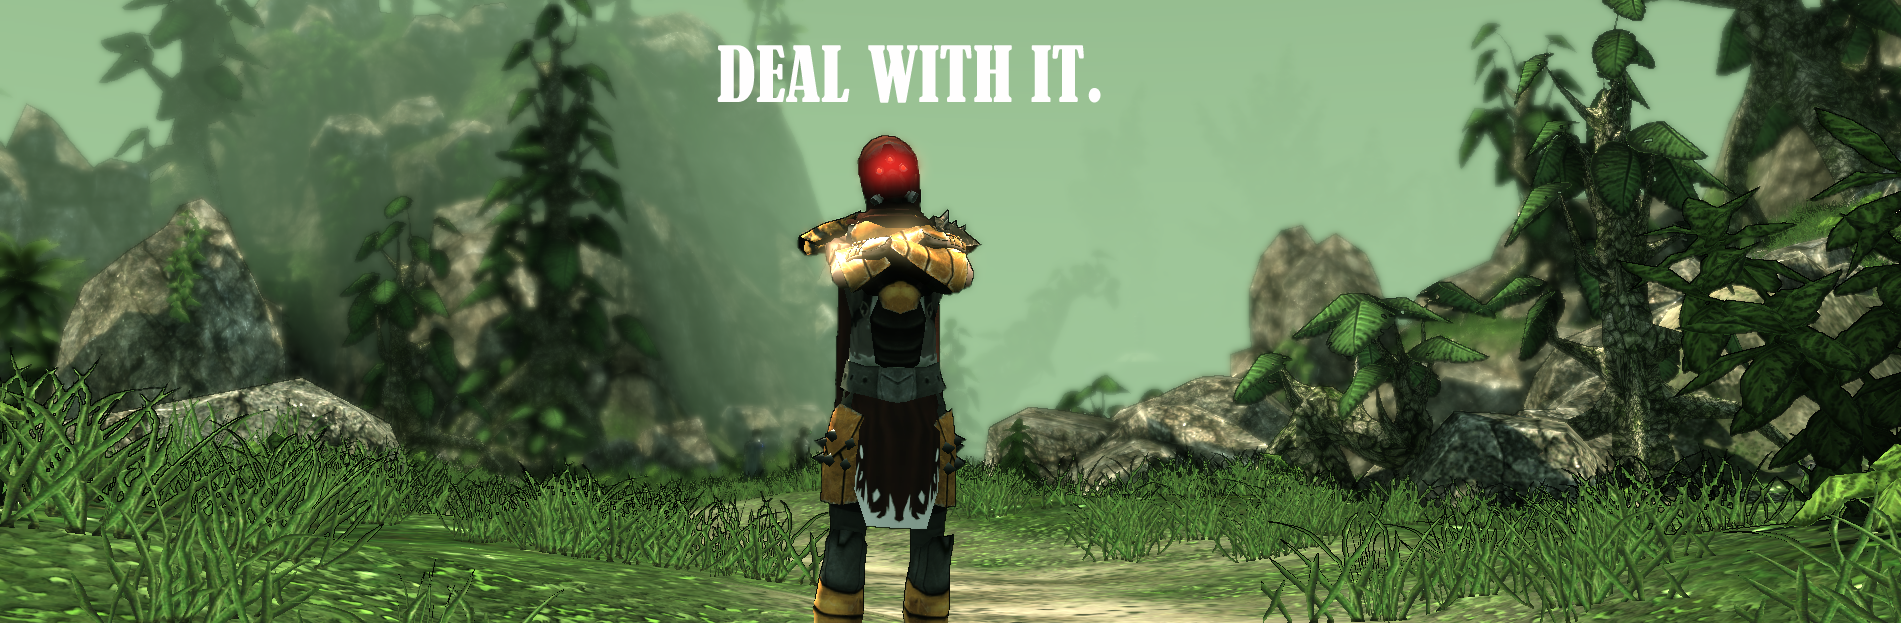 https://media.indiedb.com/images/games/1/26/25182/Dealwithit.png